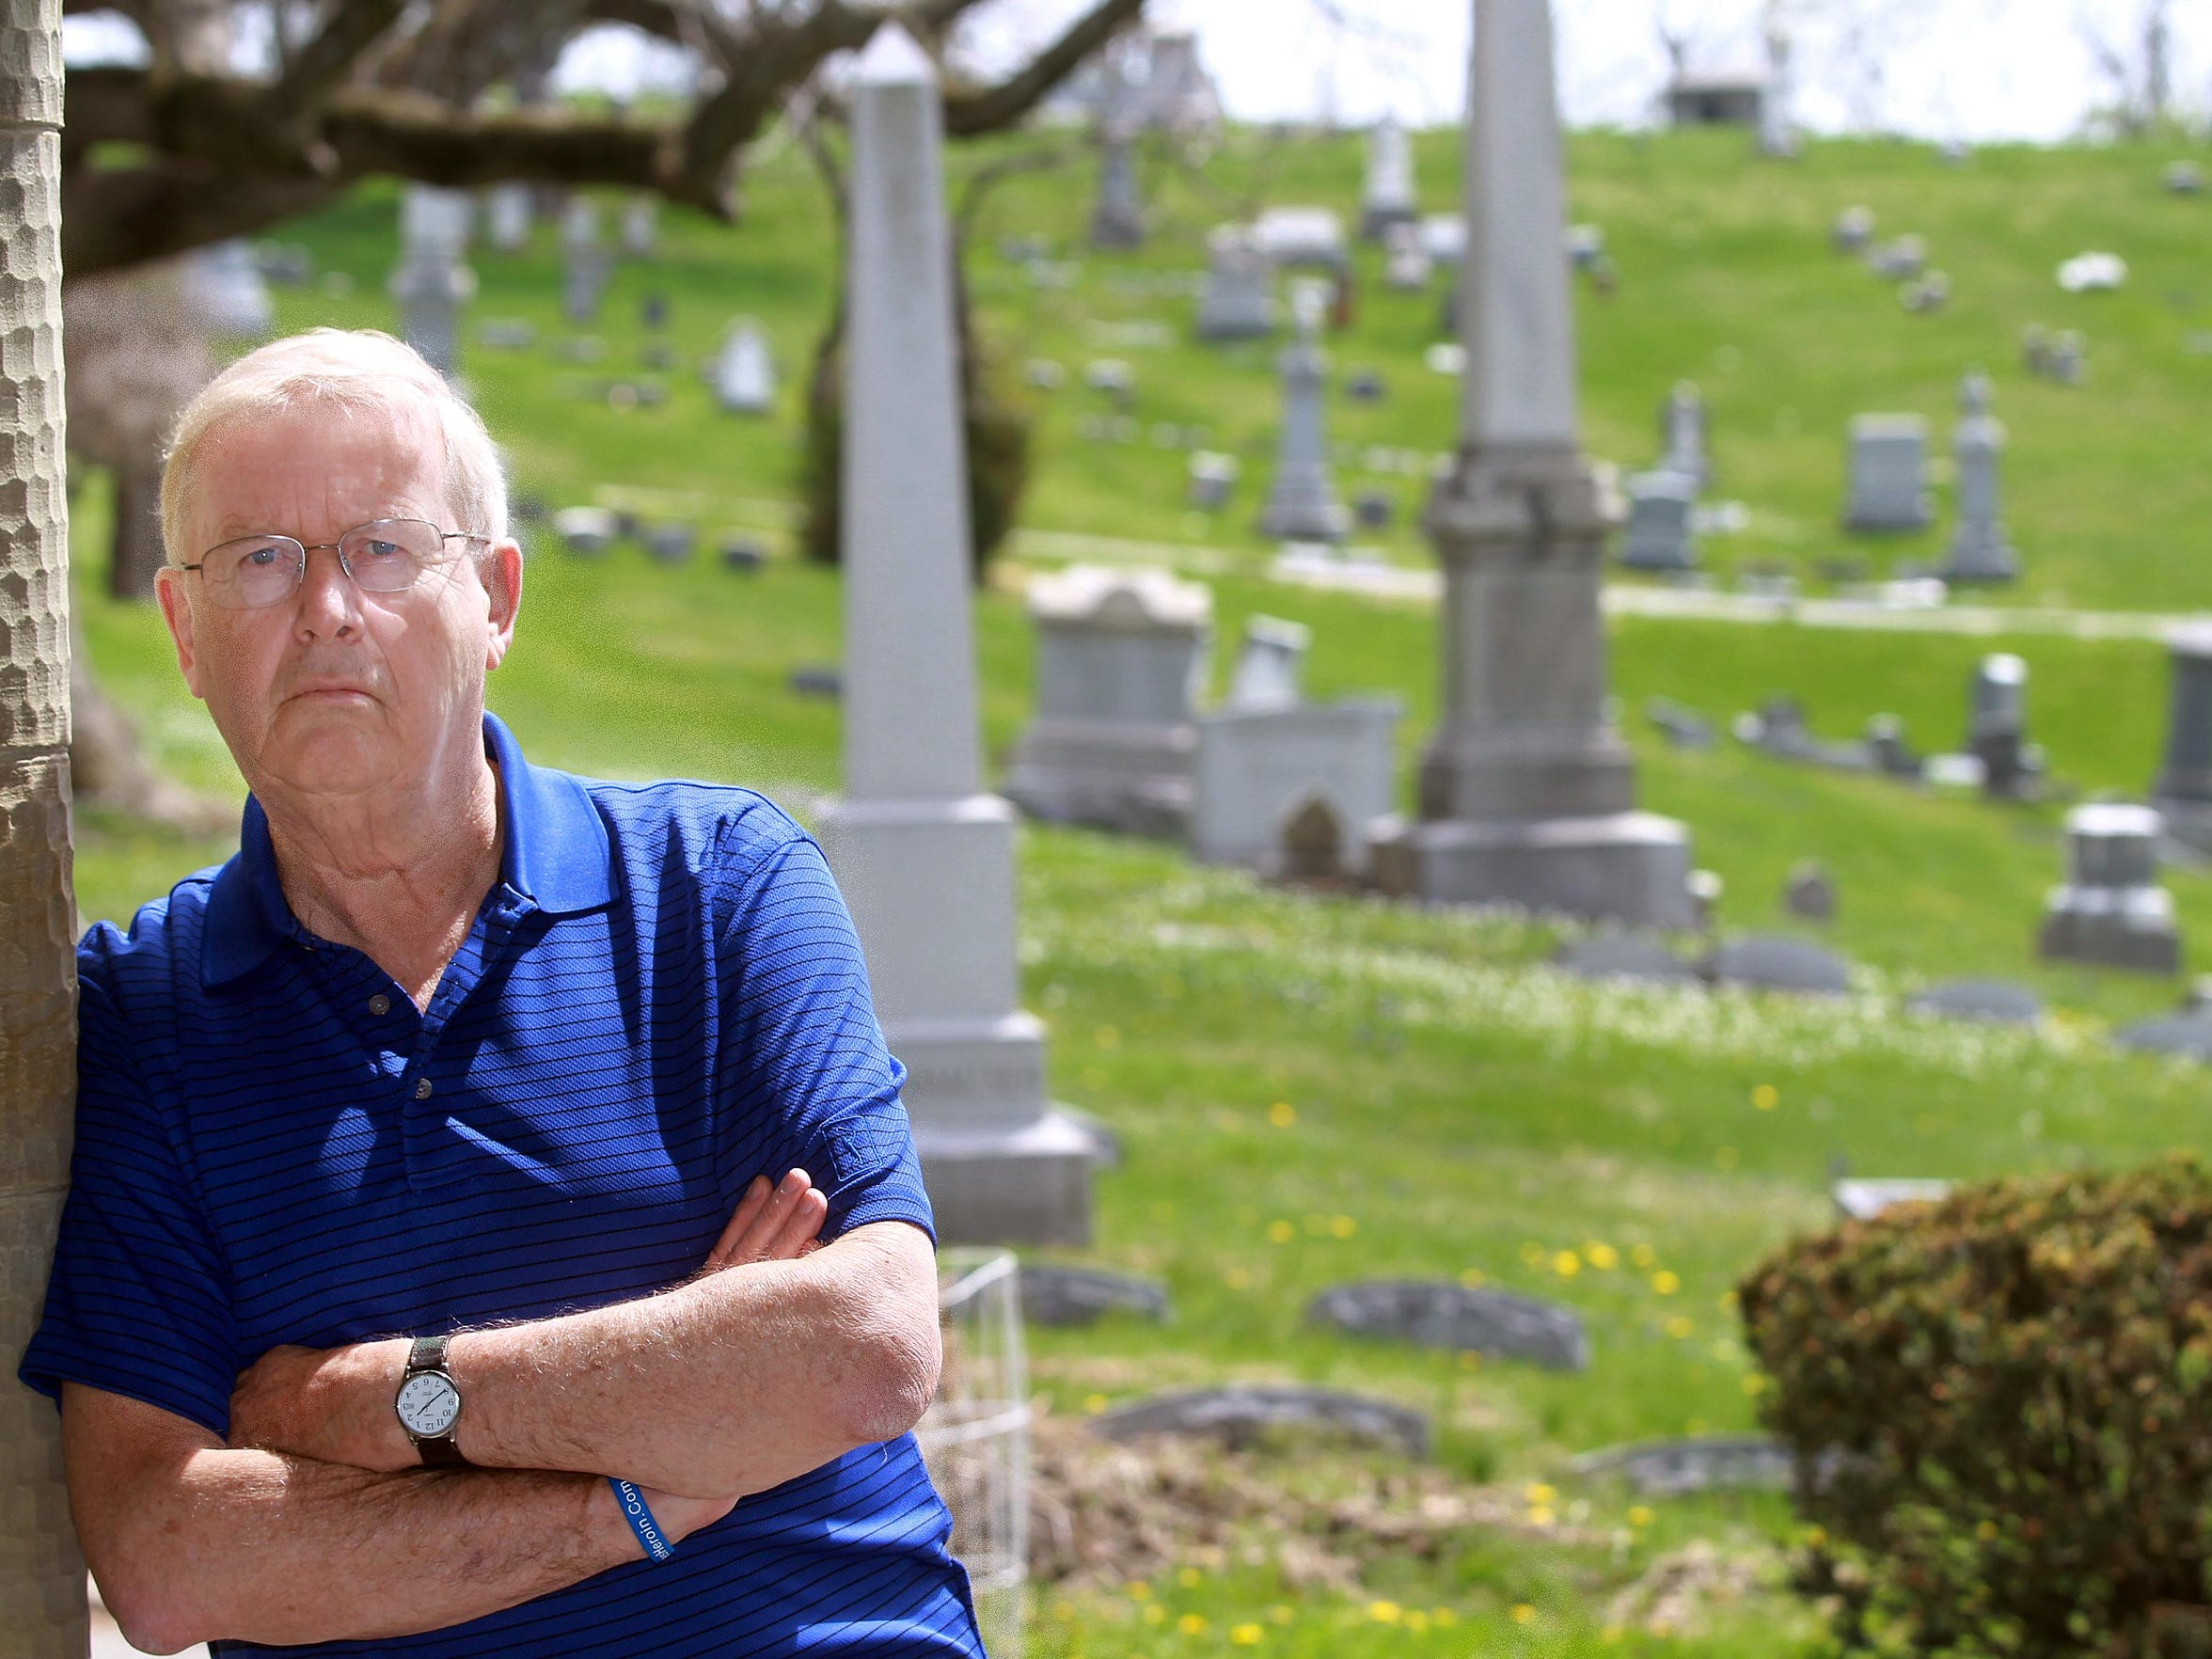 Noel Stegner of Fort Thomas stands in Evergreen Cemetery